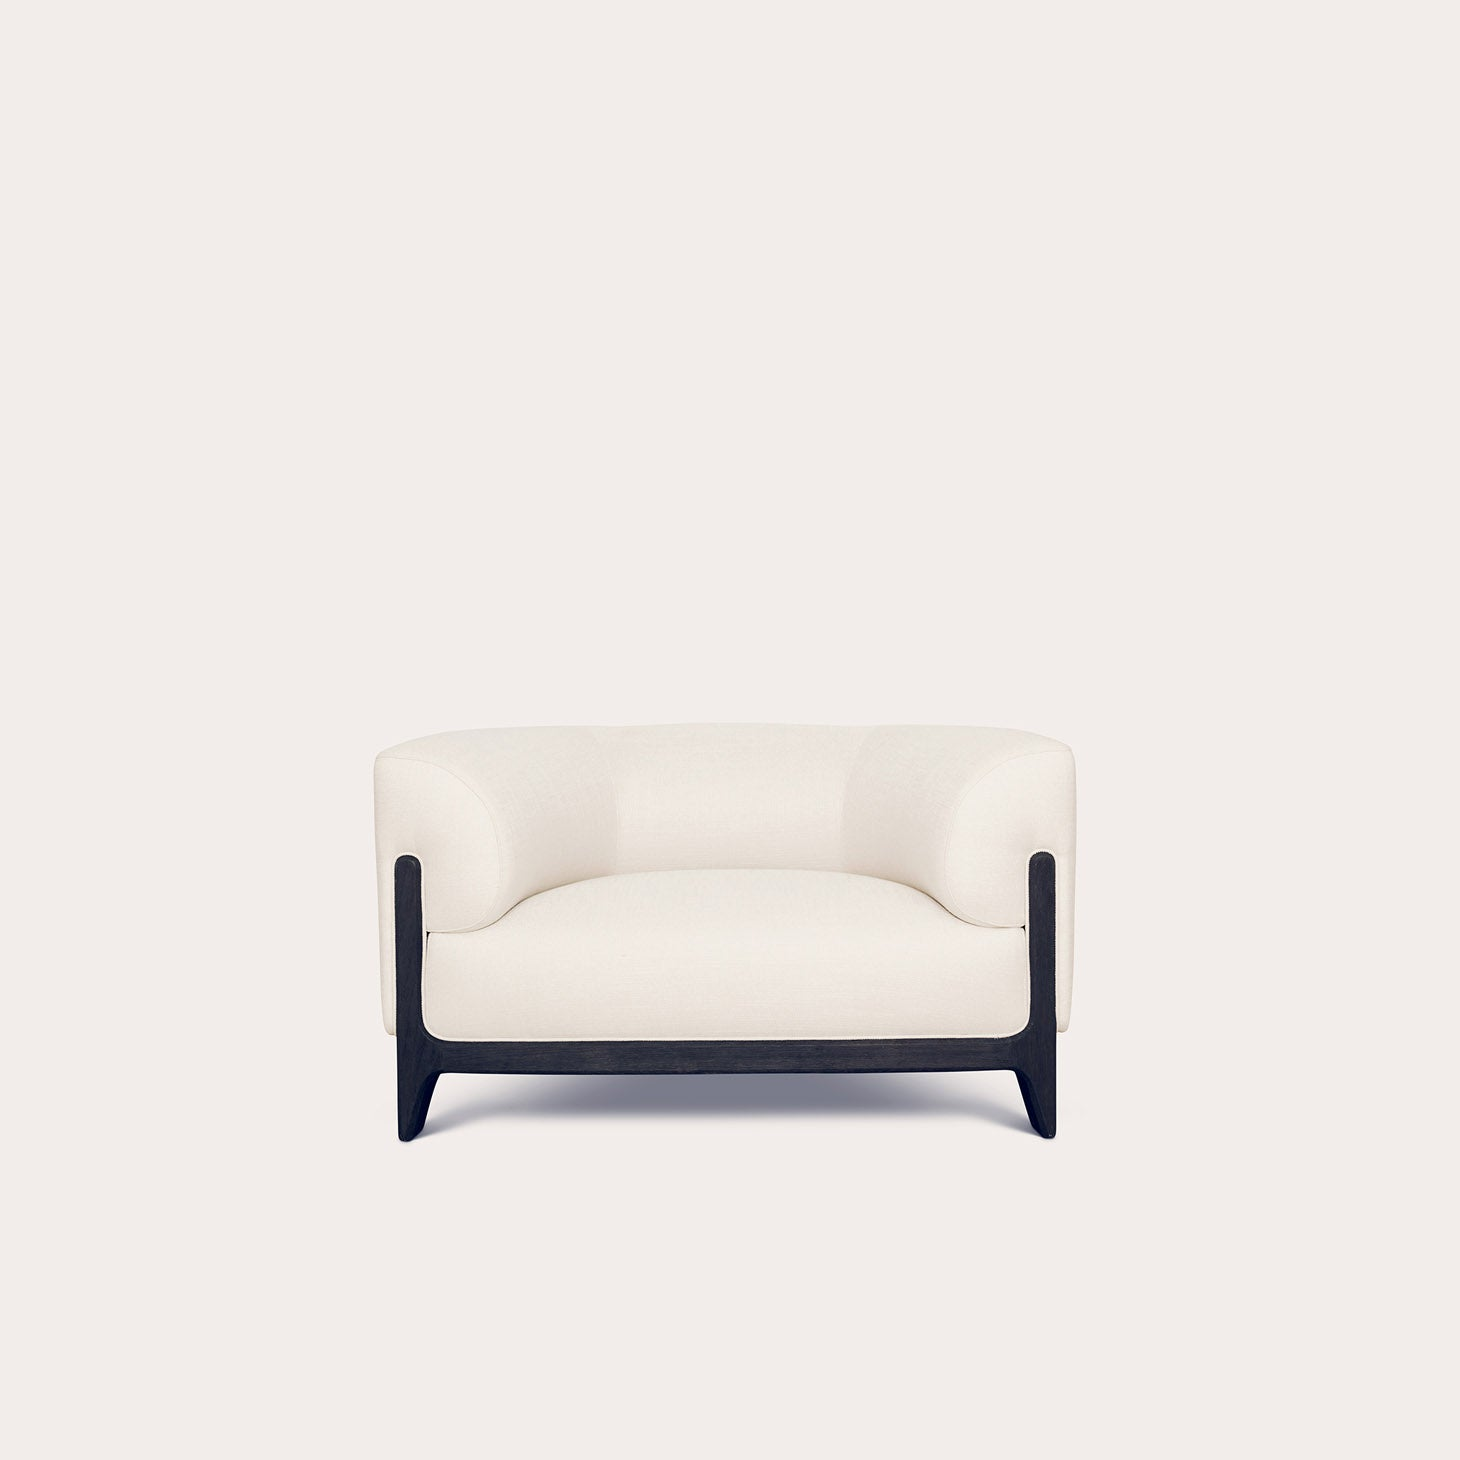 BOB Seating Forest & Giaconia Designer Furniture Sku: 008-240-10132